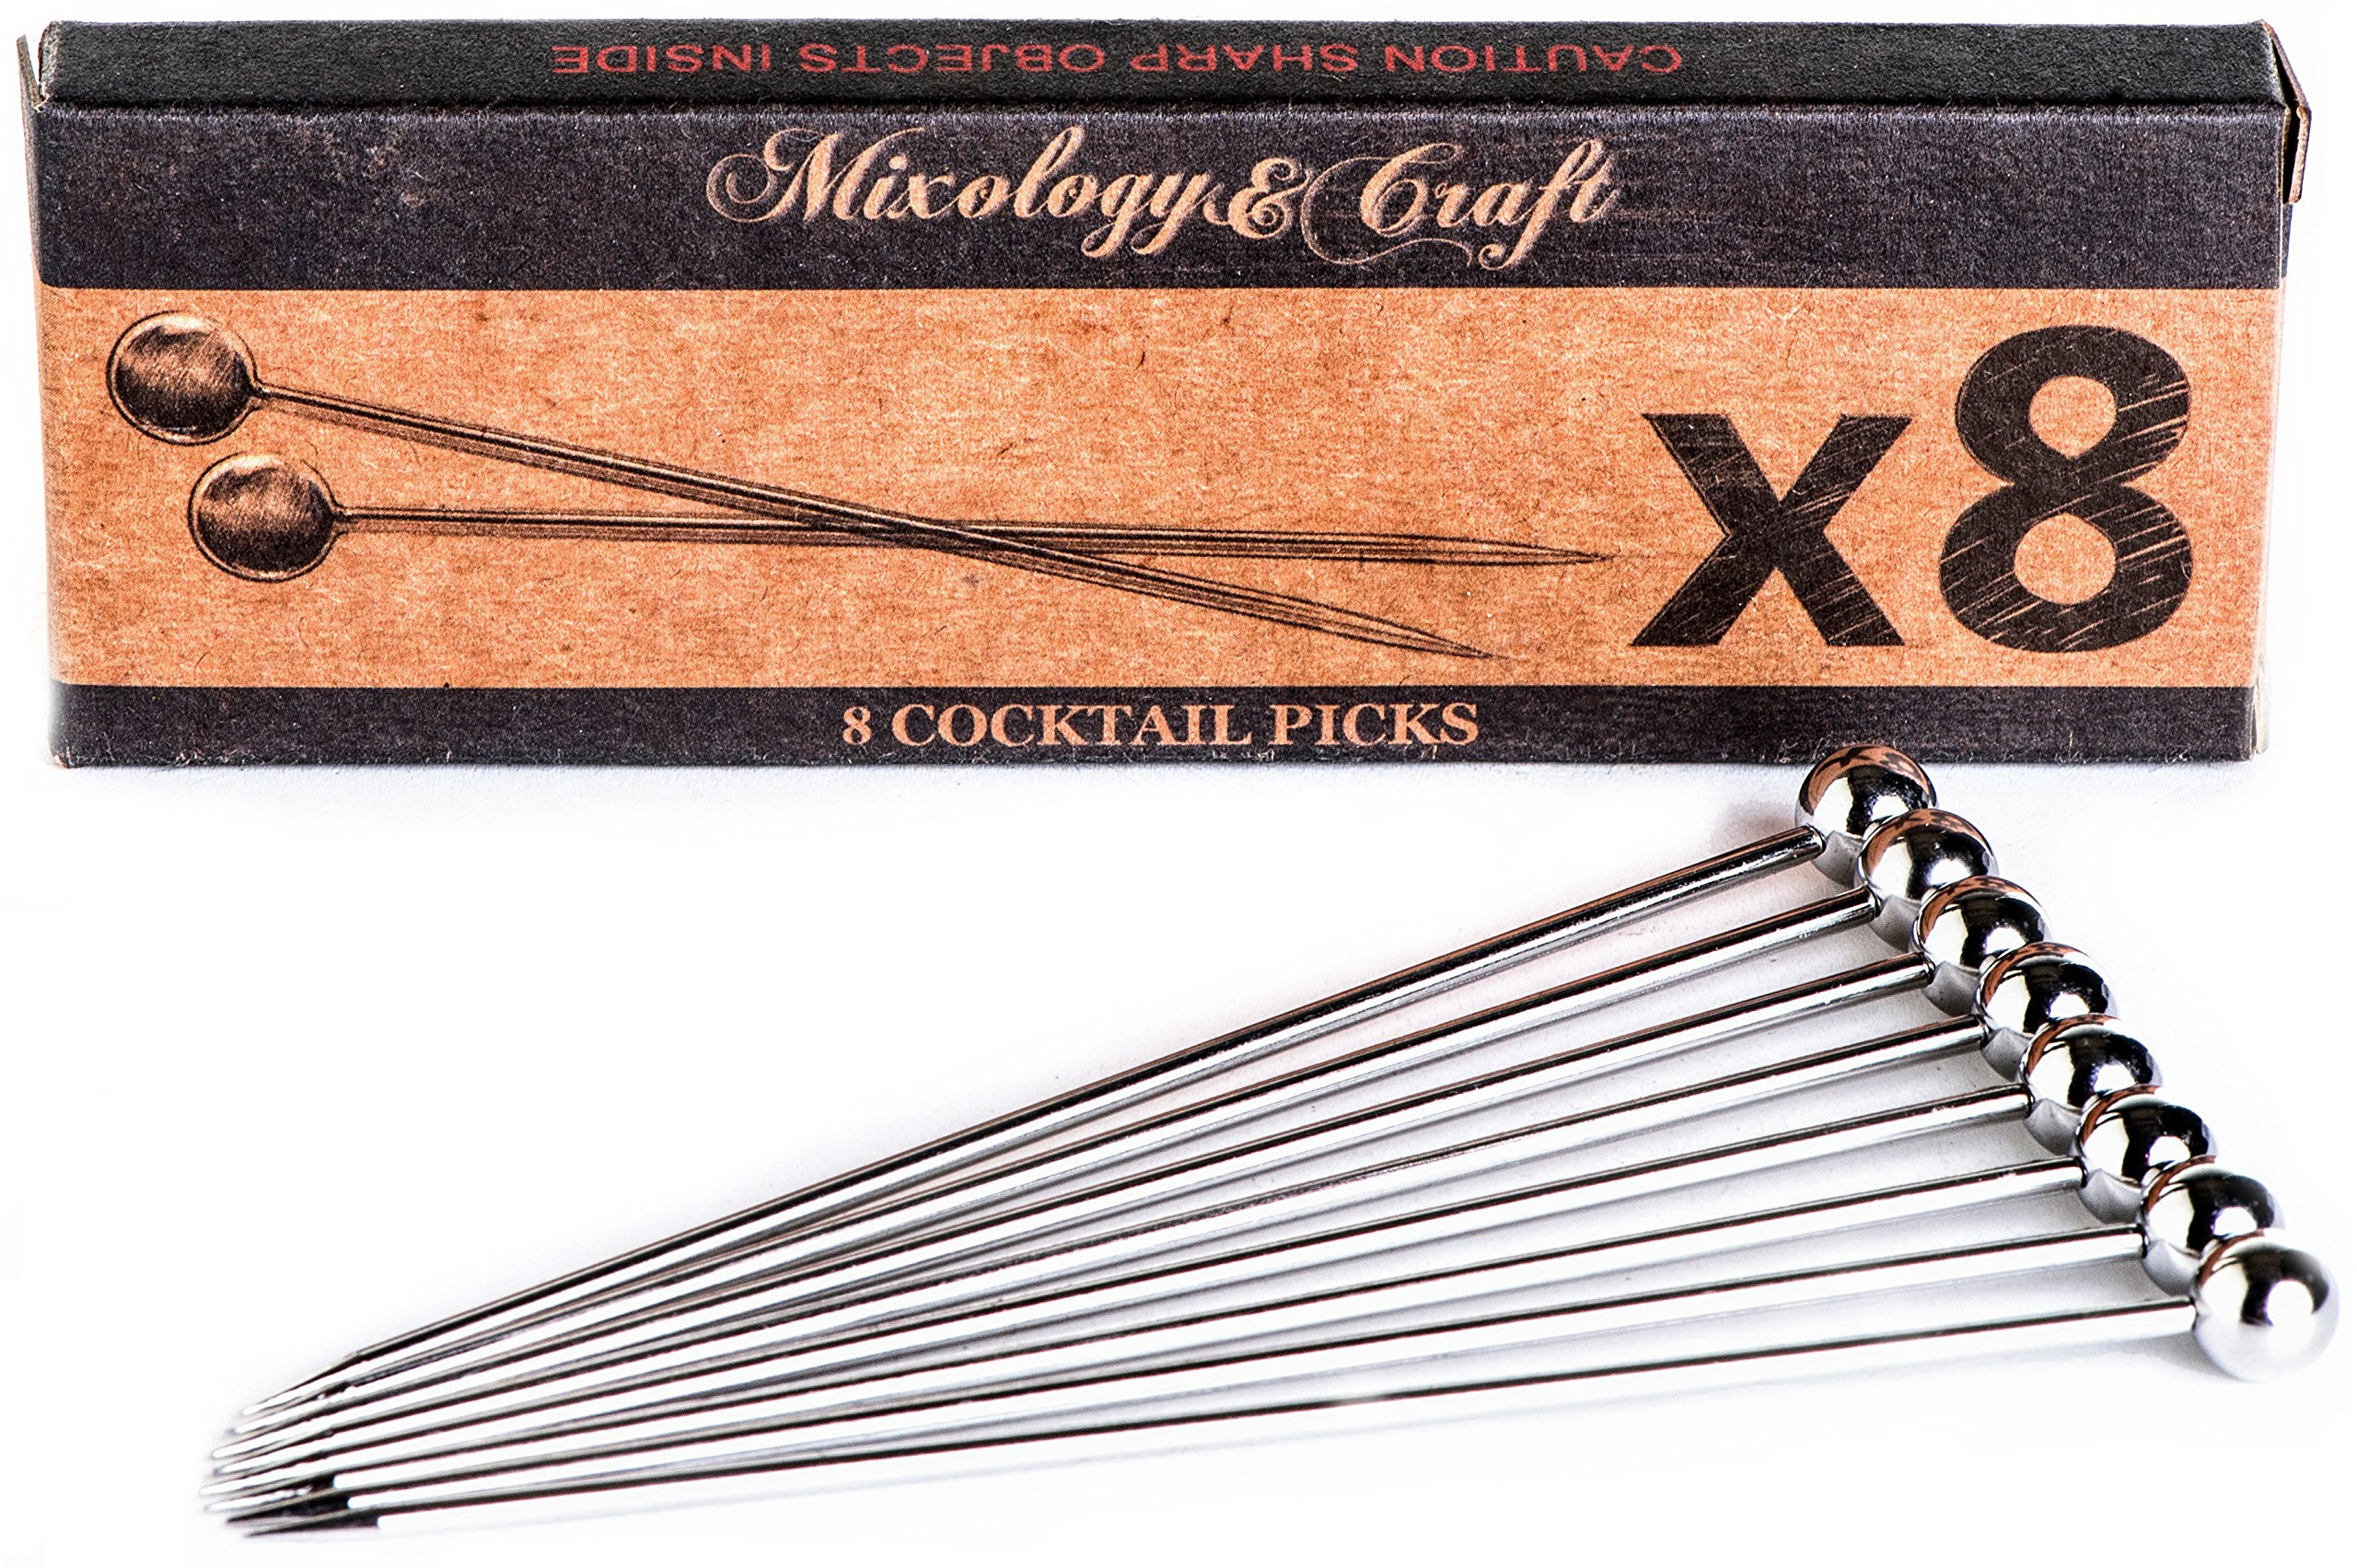 """Stainless Steel Cocktail Picks - 4"""" (8pc Set) - Reusable Martini Picks - Perfect for Olives and Food - Will Rest Beautifully in your Drinks While Holding a Sexy Garnish"""